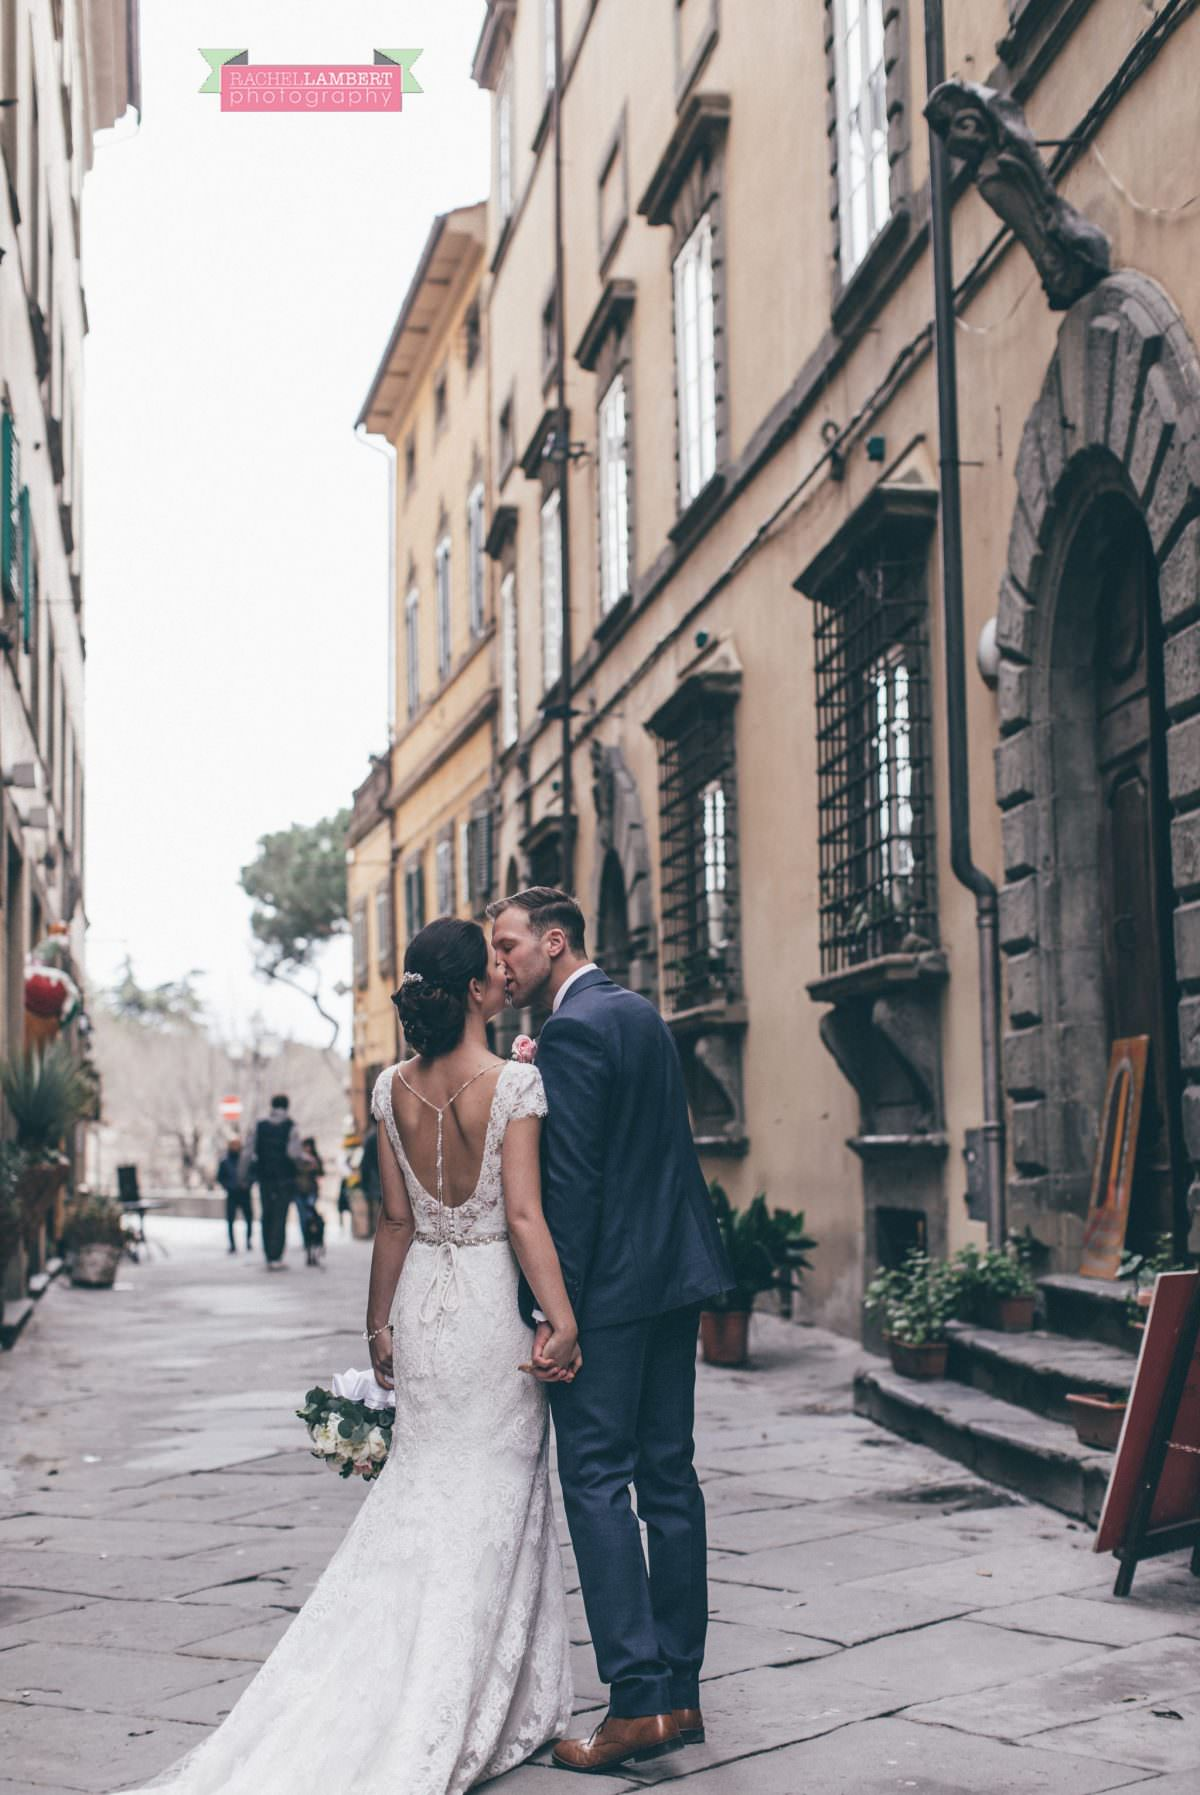 bride and groom portrait wedding in italy colour cortona tuscany walking through street